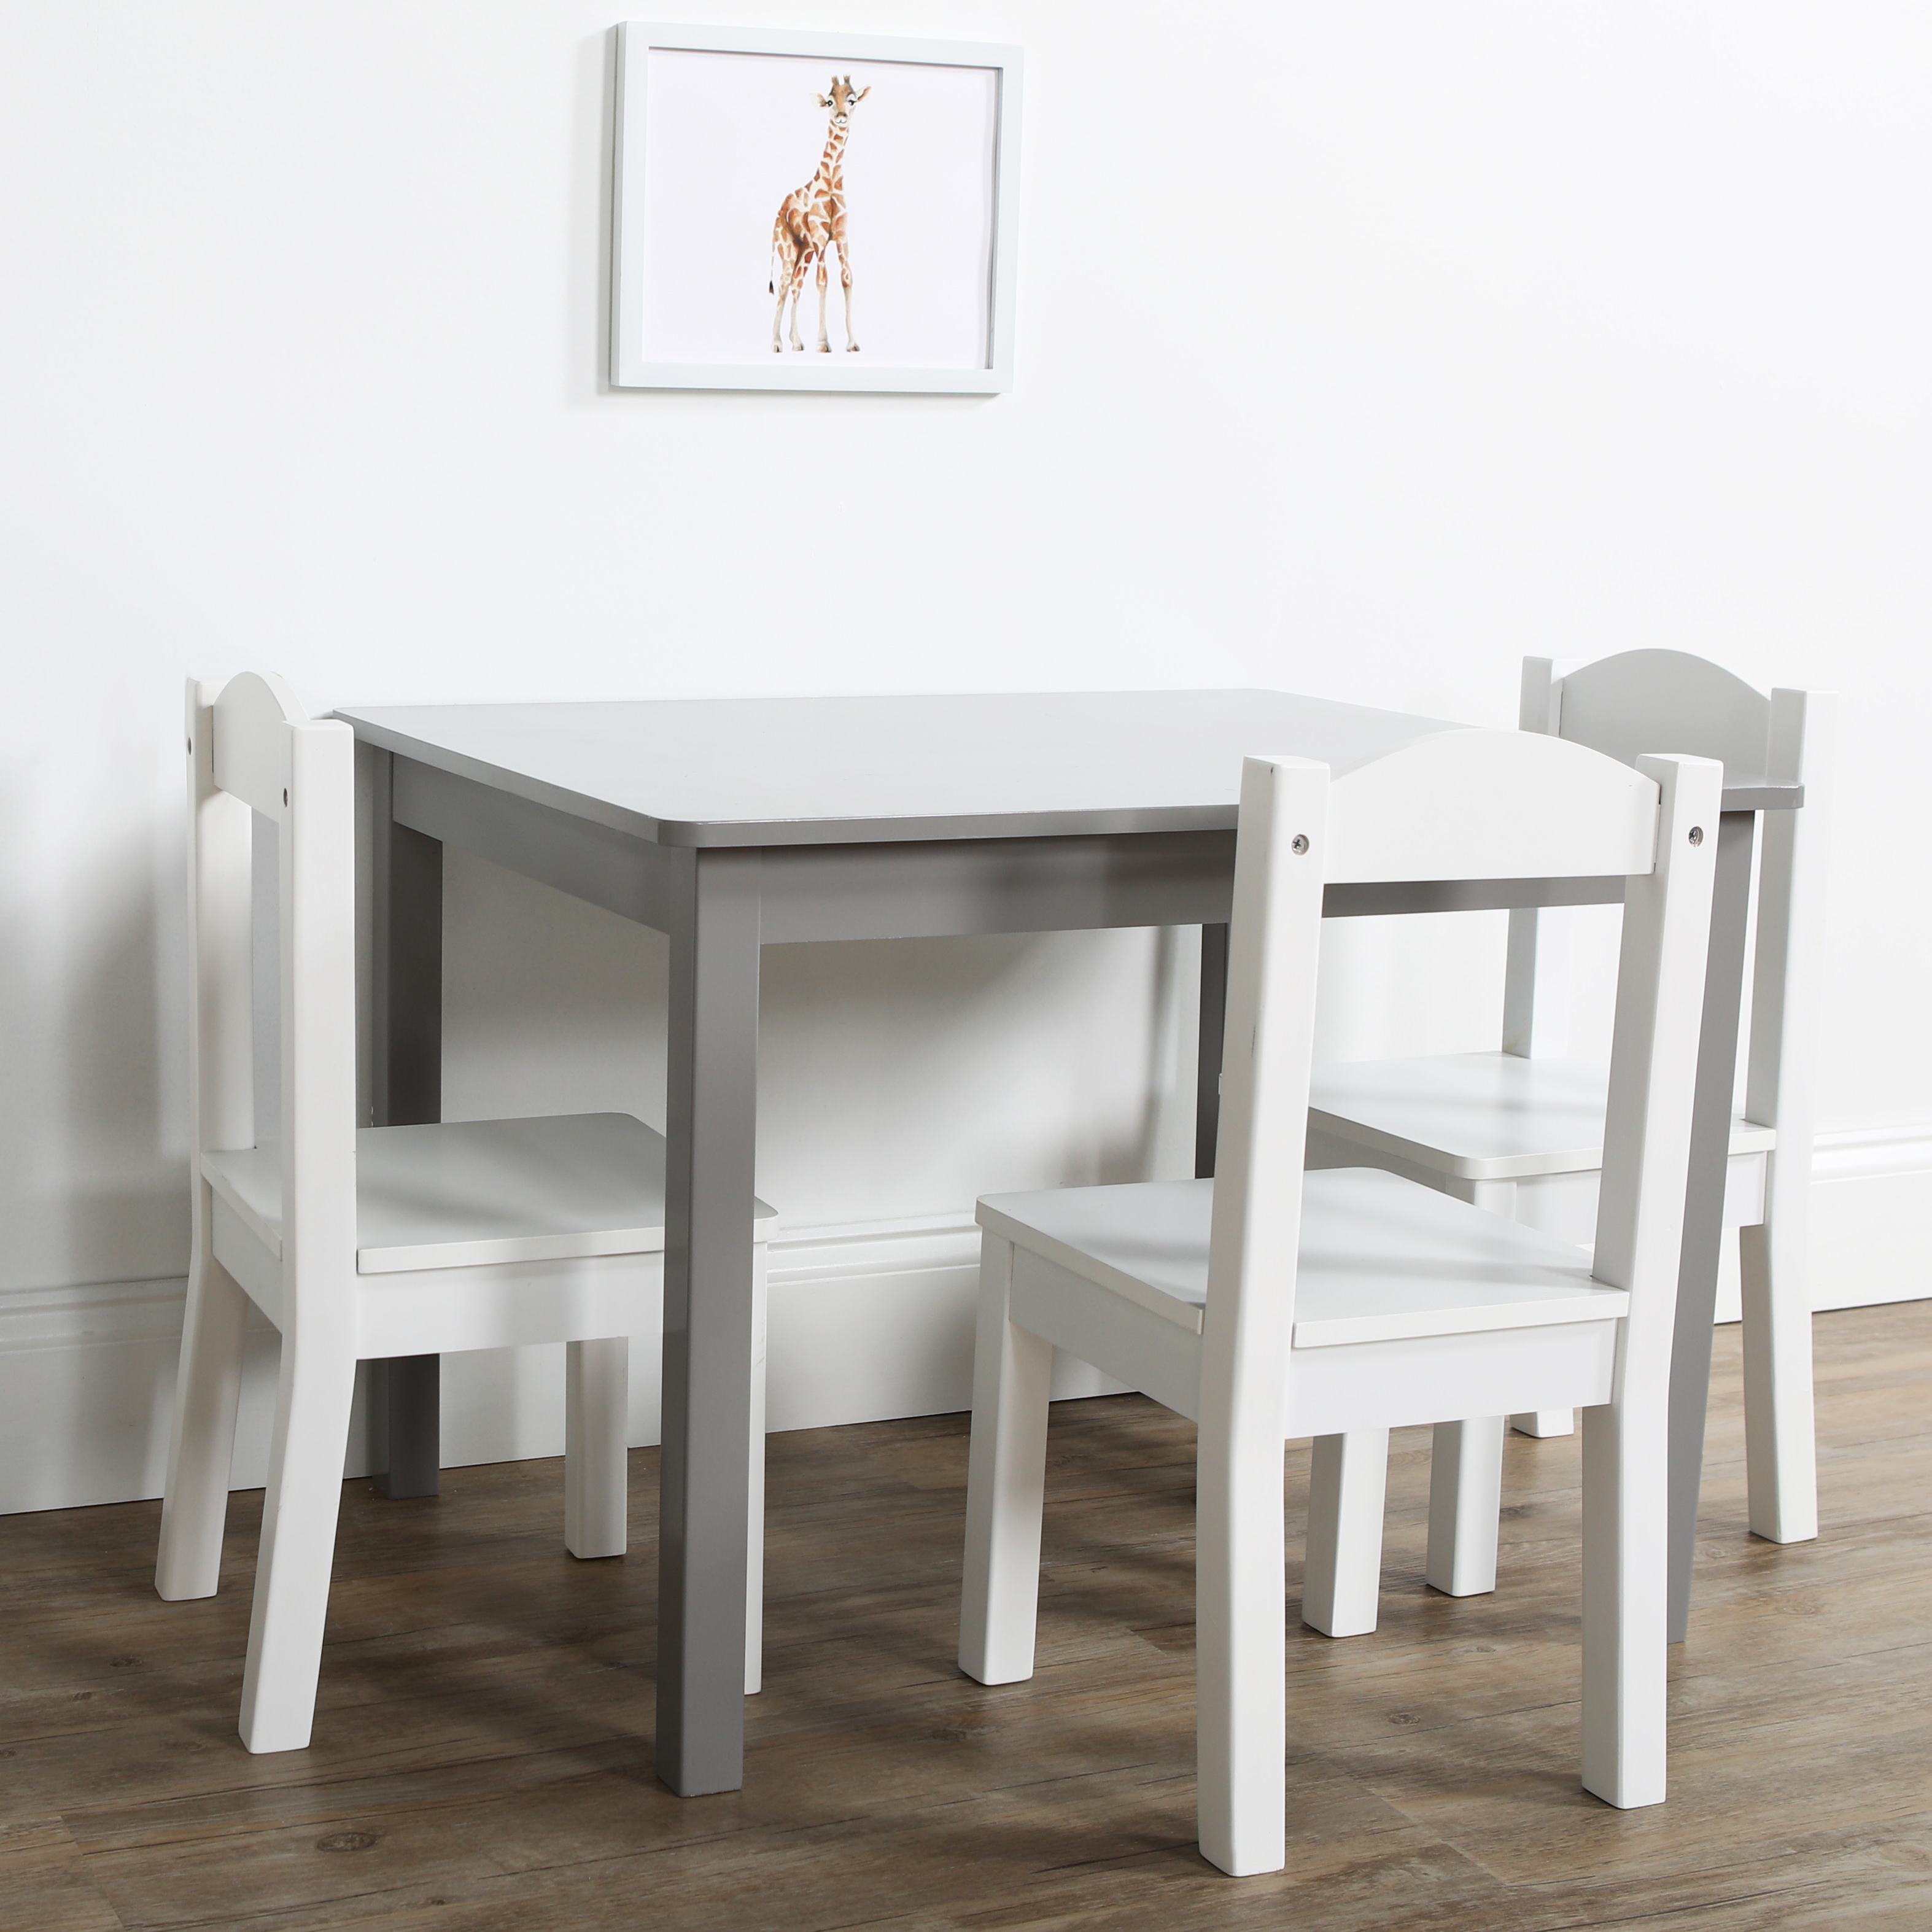 Kids Wood Table And Chairs Tot Tutors Inspire 5 Piece Wood Kids Table Chairs Set In Grey White